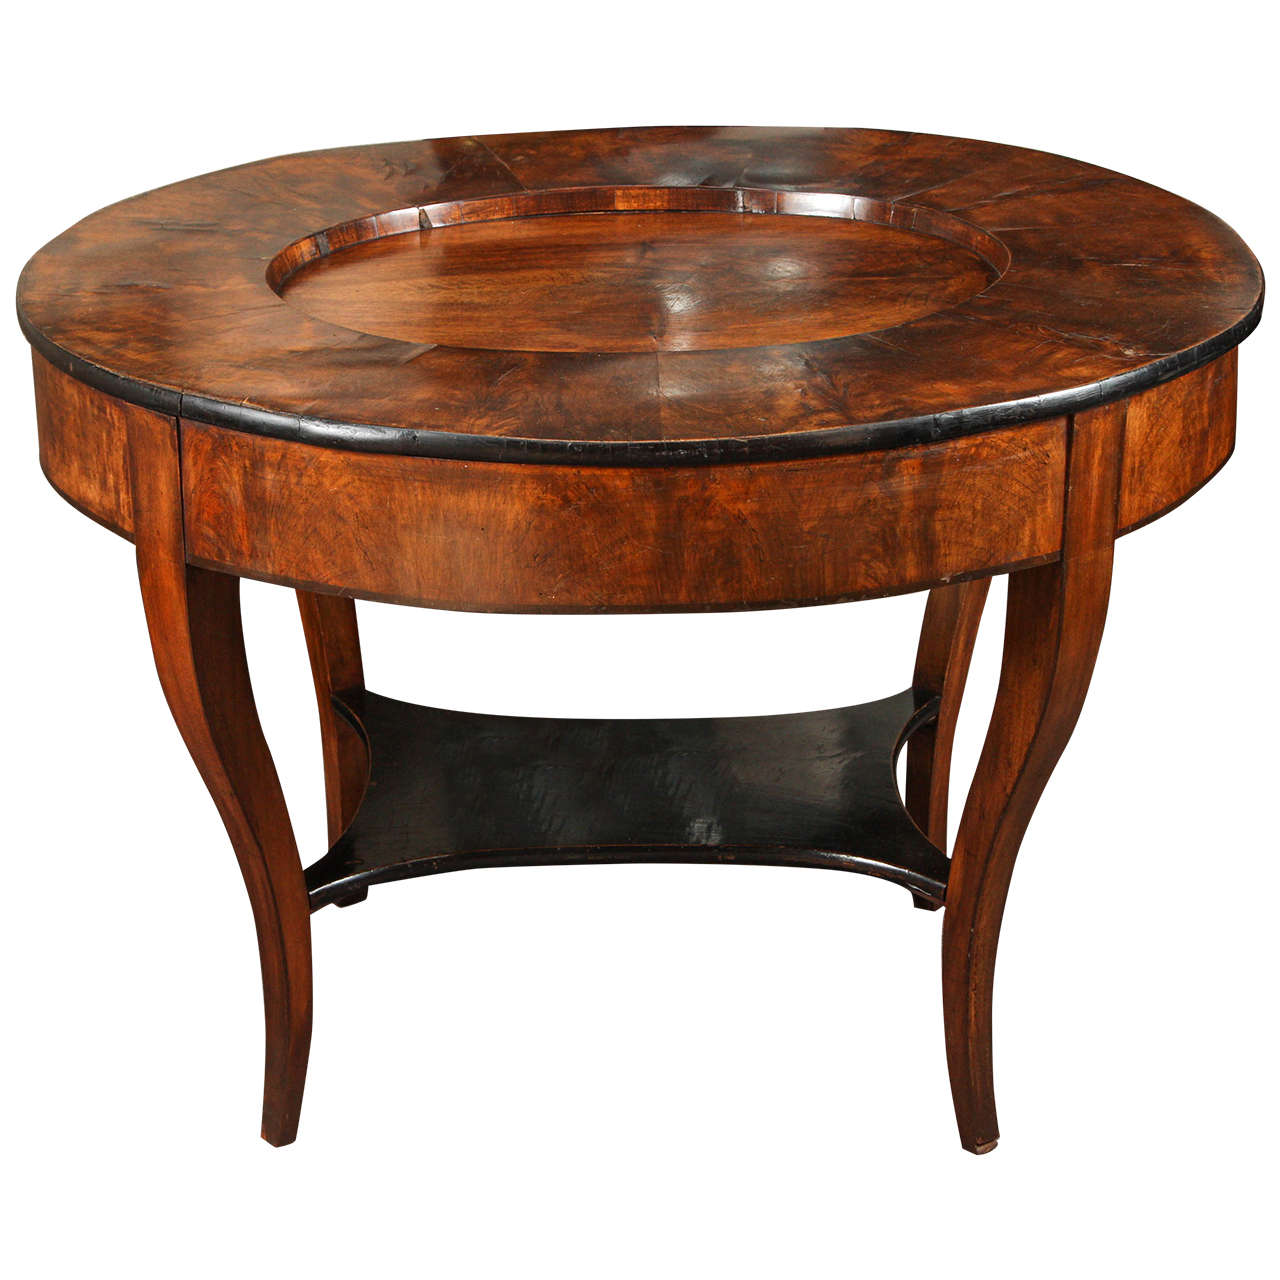 Tray top burl wood table for sale at stdibs